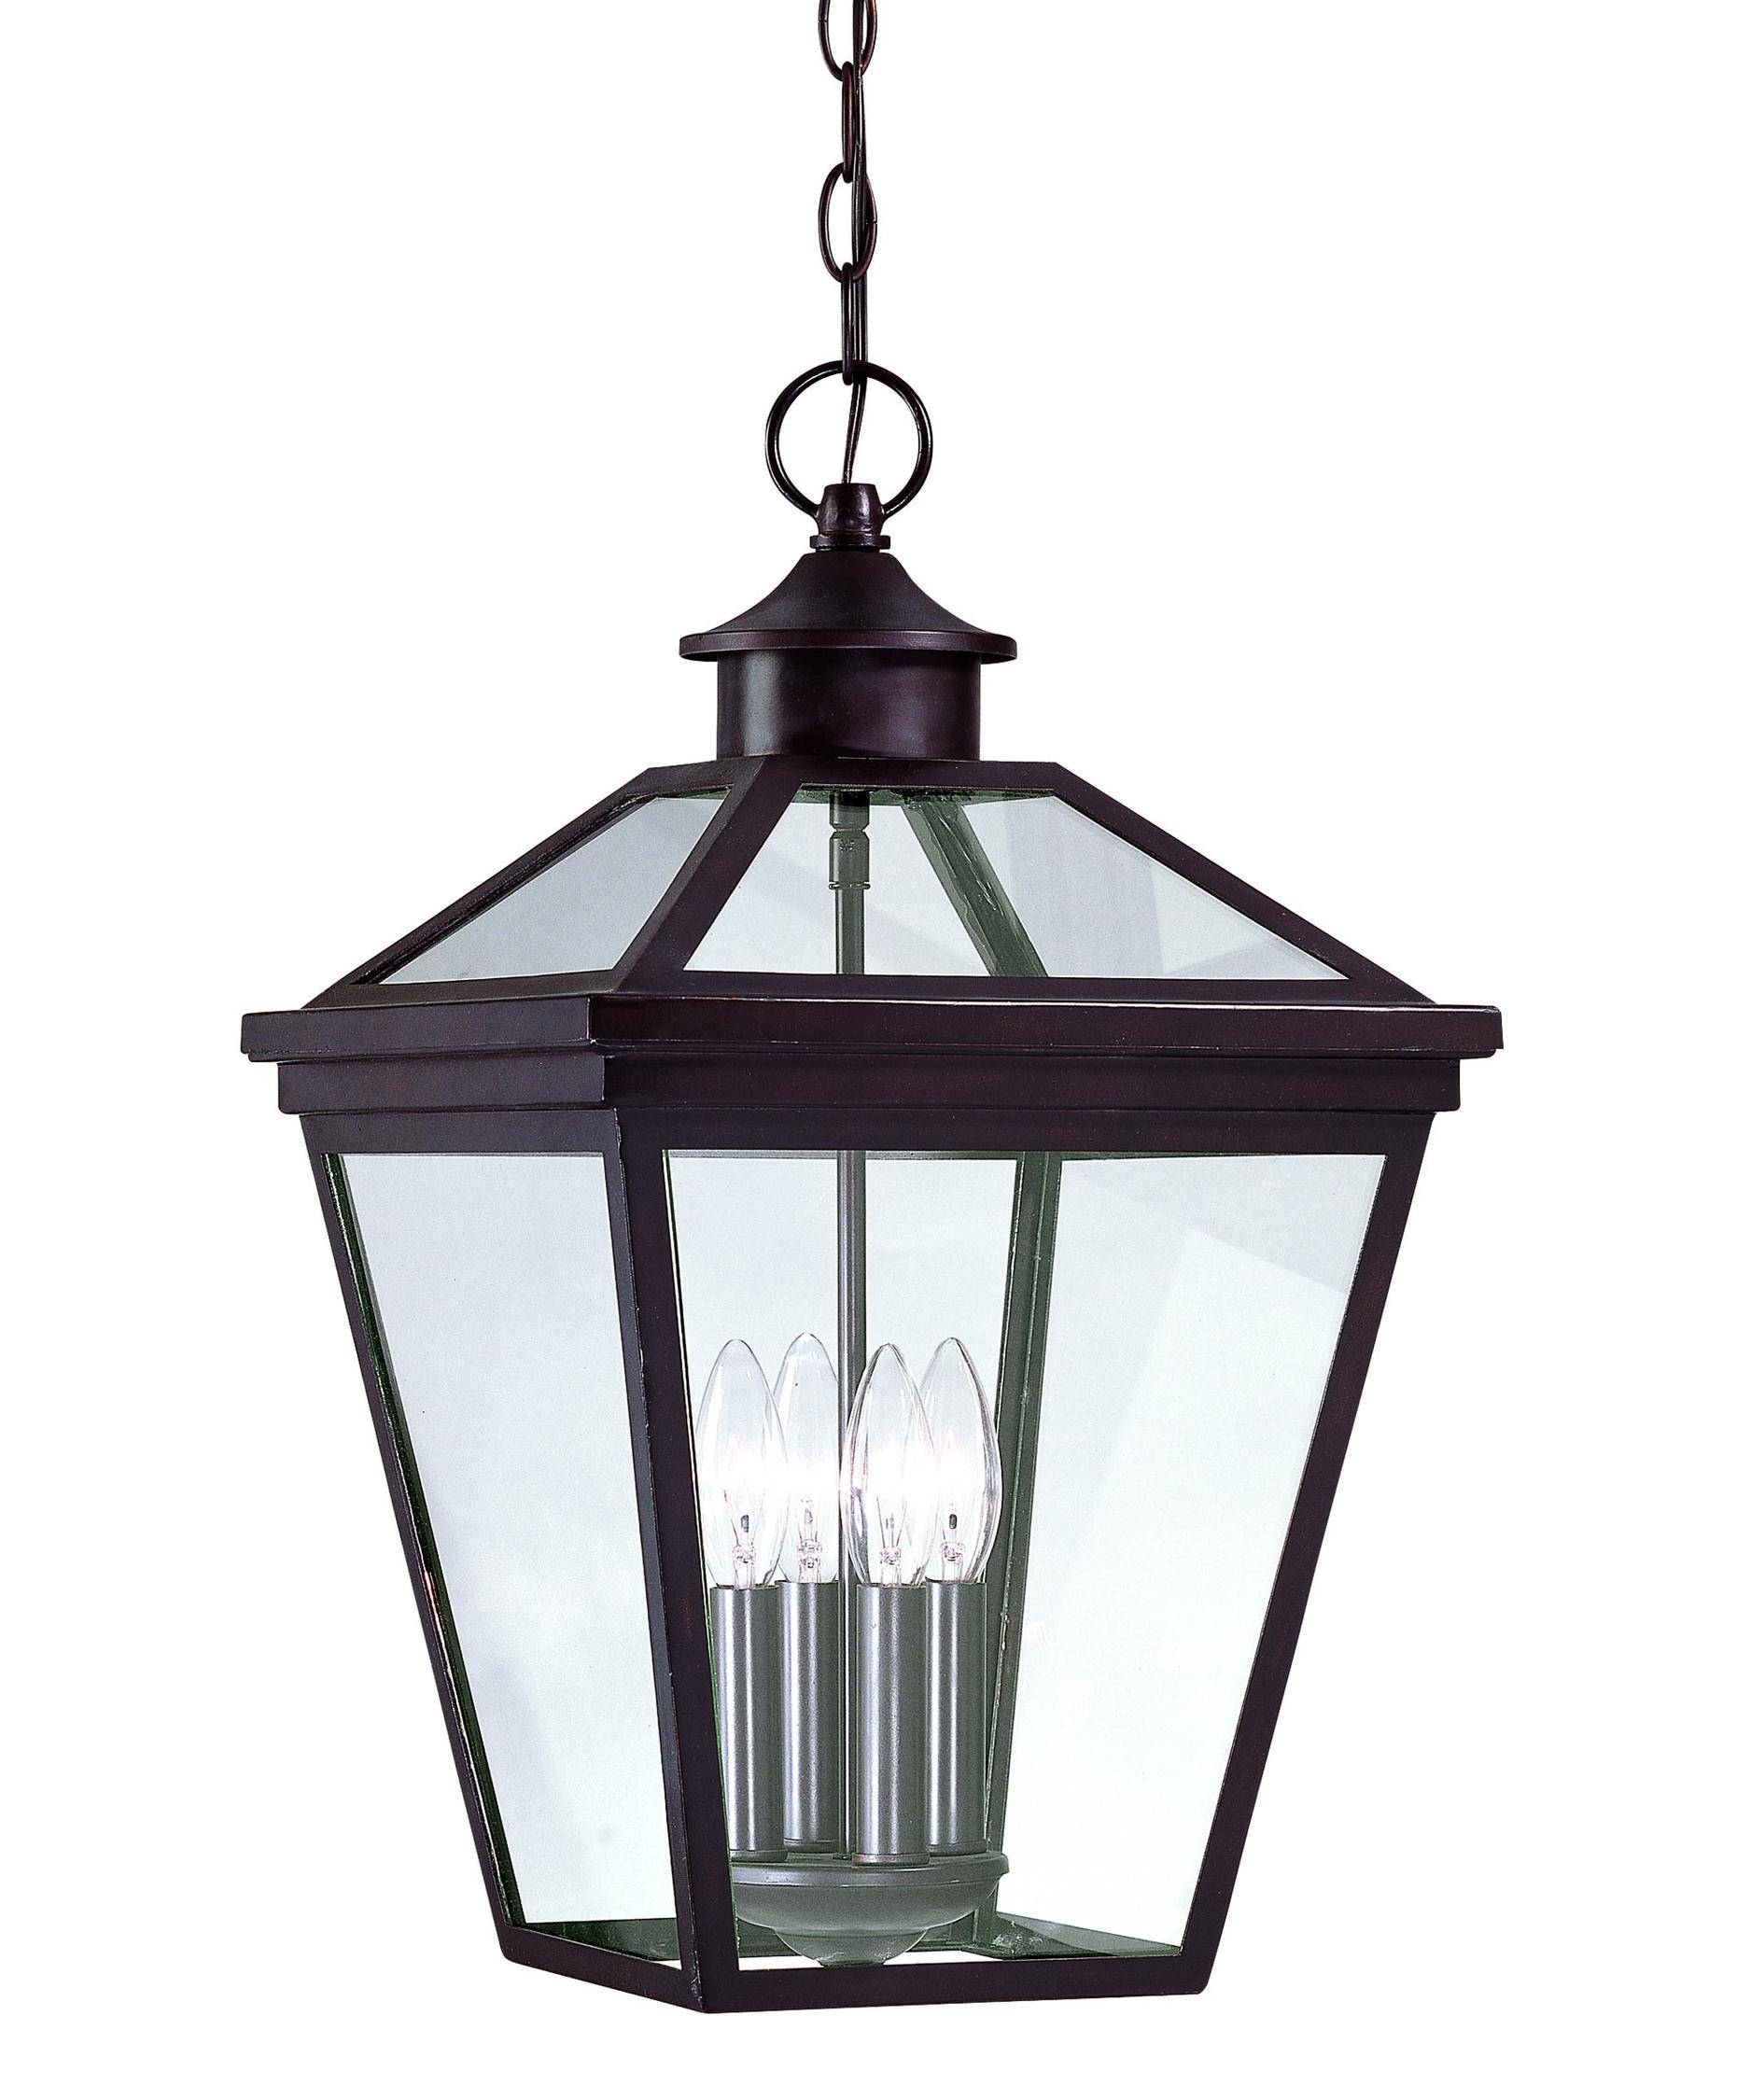 Savoy House 5 145 13 Ellijay 12 Inch Wide 4 Light Outdoor Hanging With Regard To Outdoor Pendant Lighting (View 10 of 15)